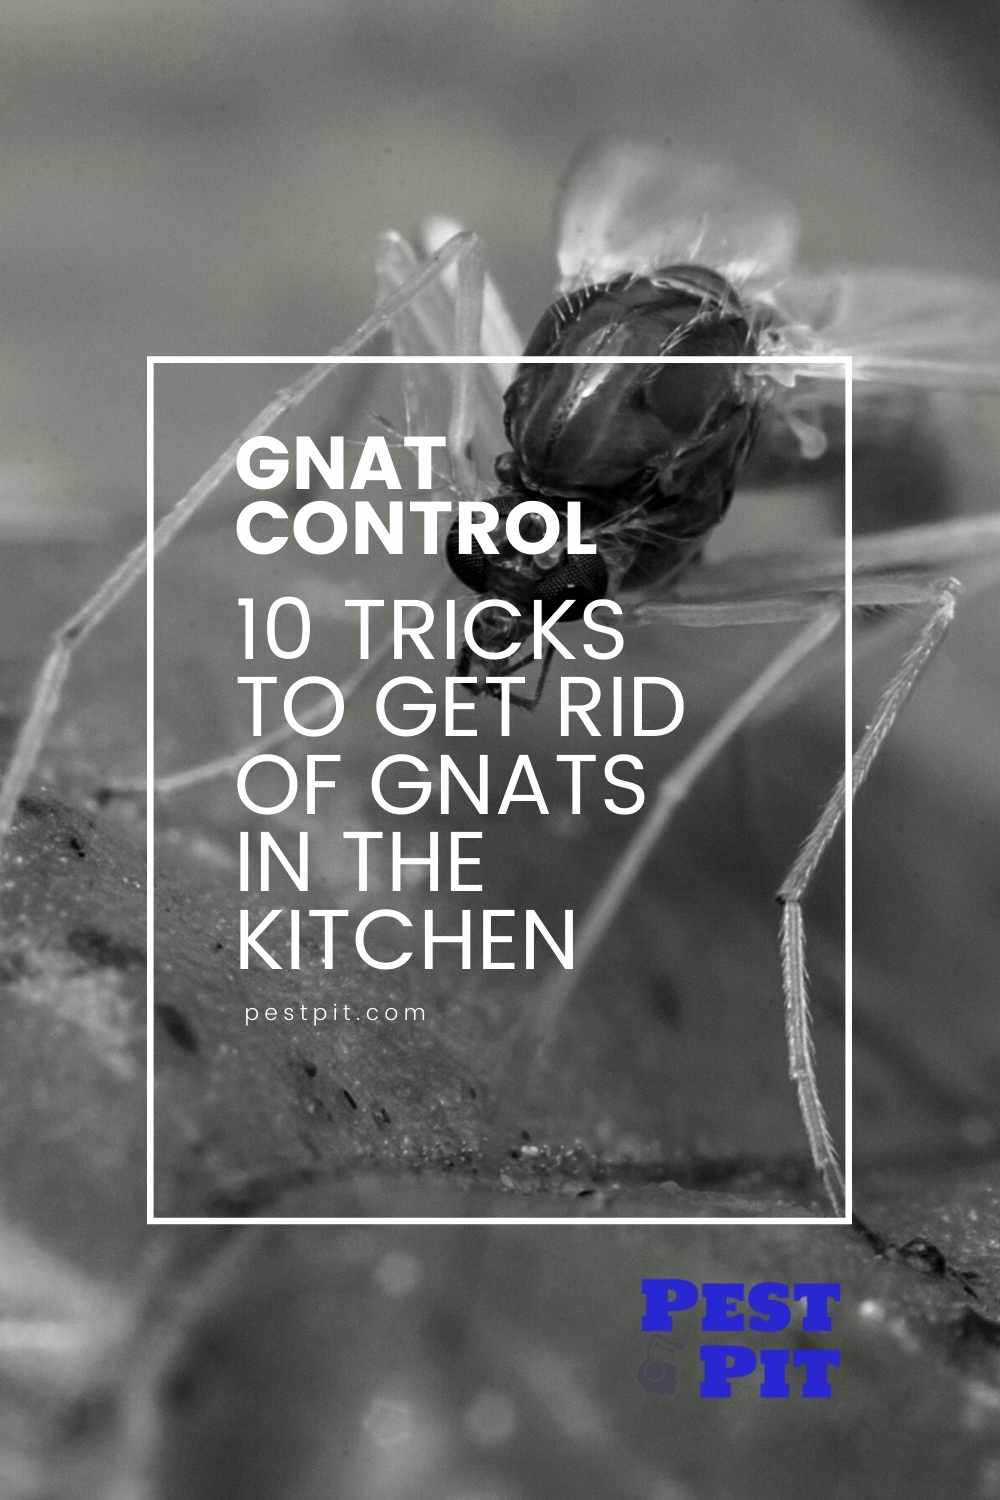 10 Tricks To Get Rid Of Gnats In The Kitchen